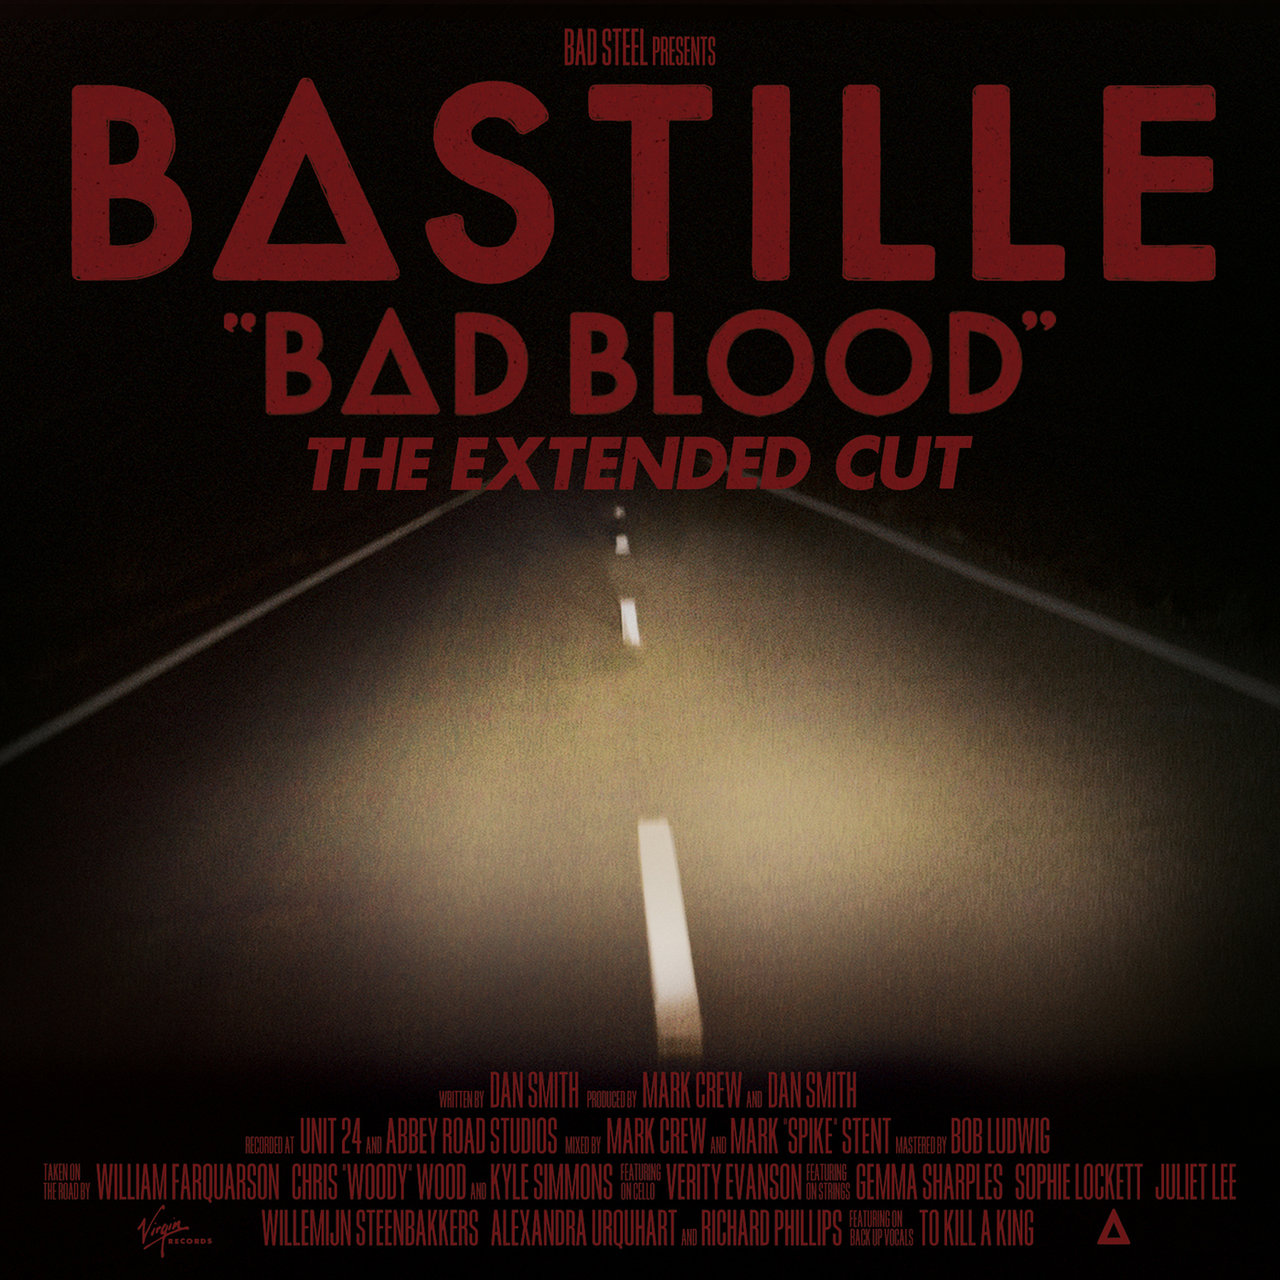 Bad Blood (The Extended Cut)